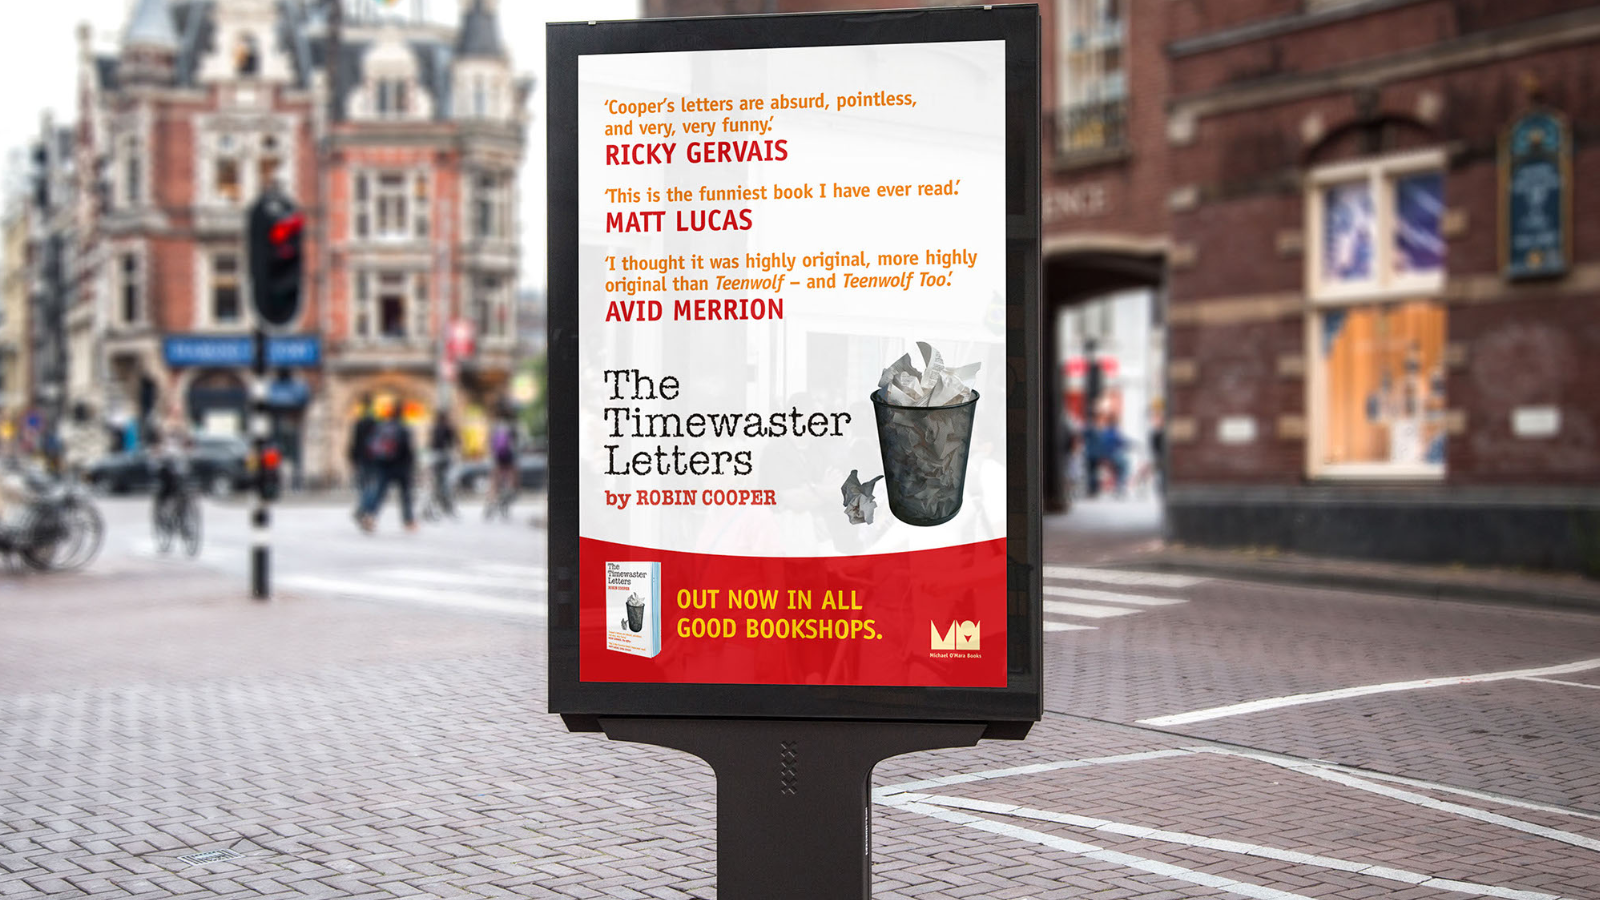 The Timewaster Letters poster